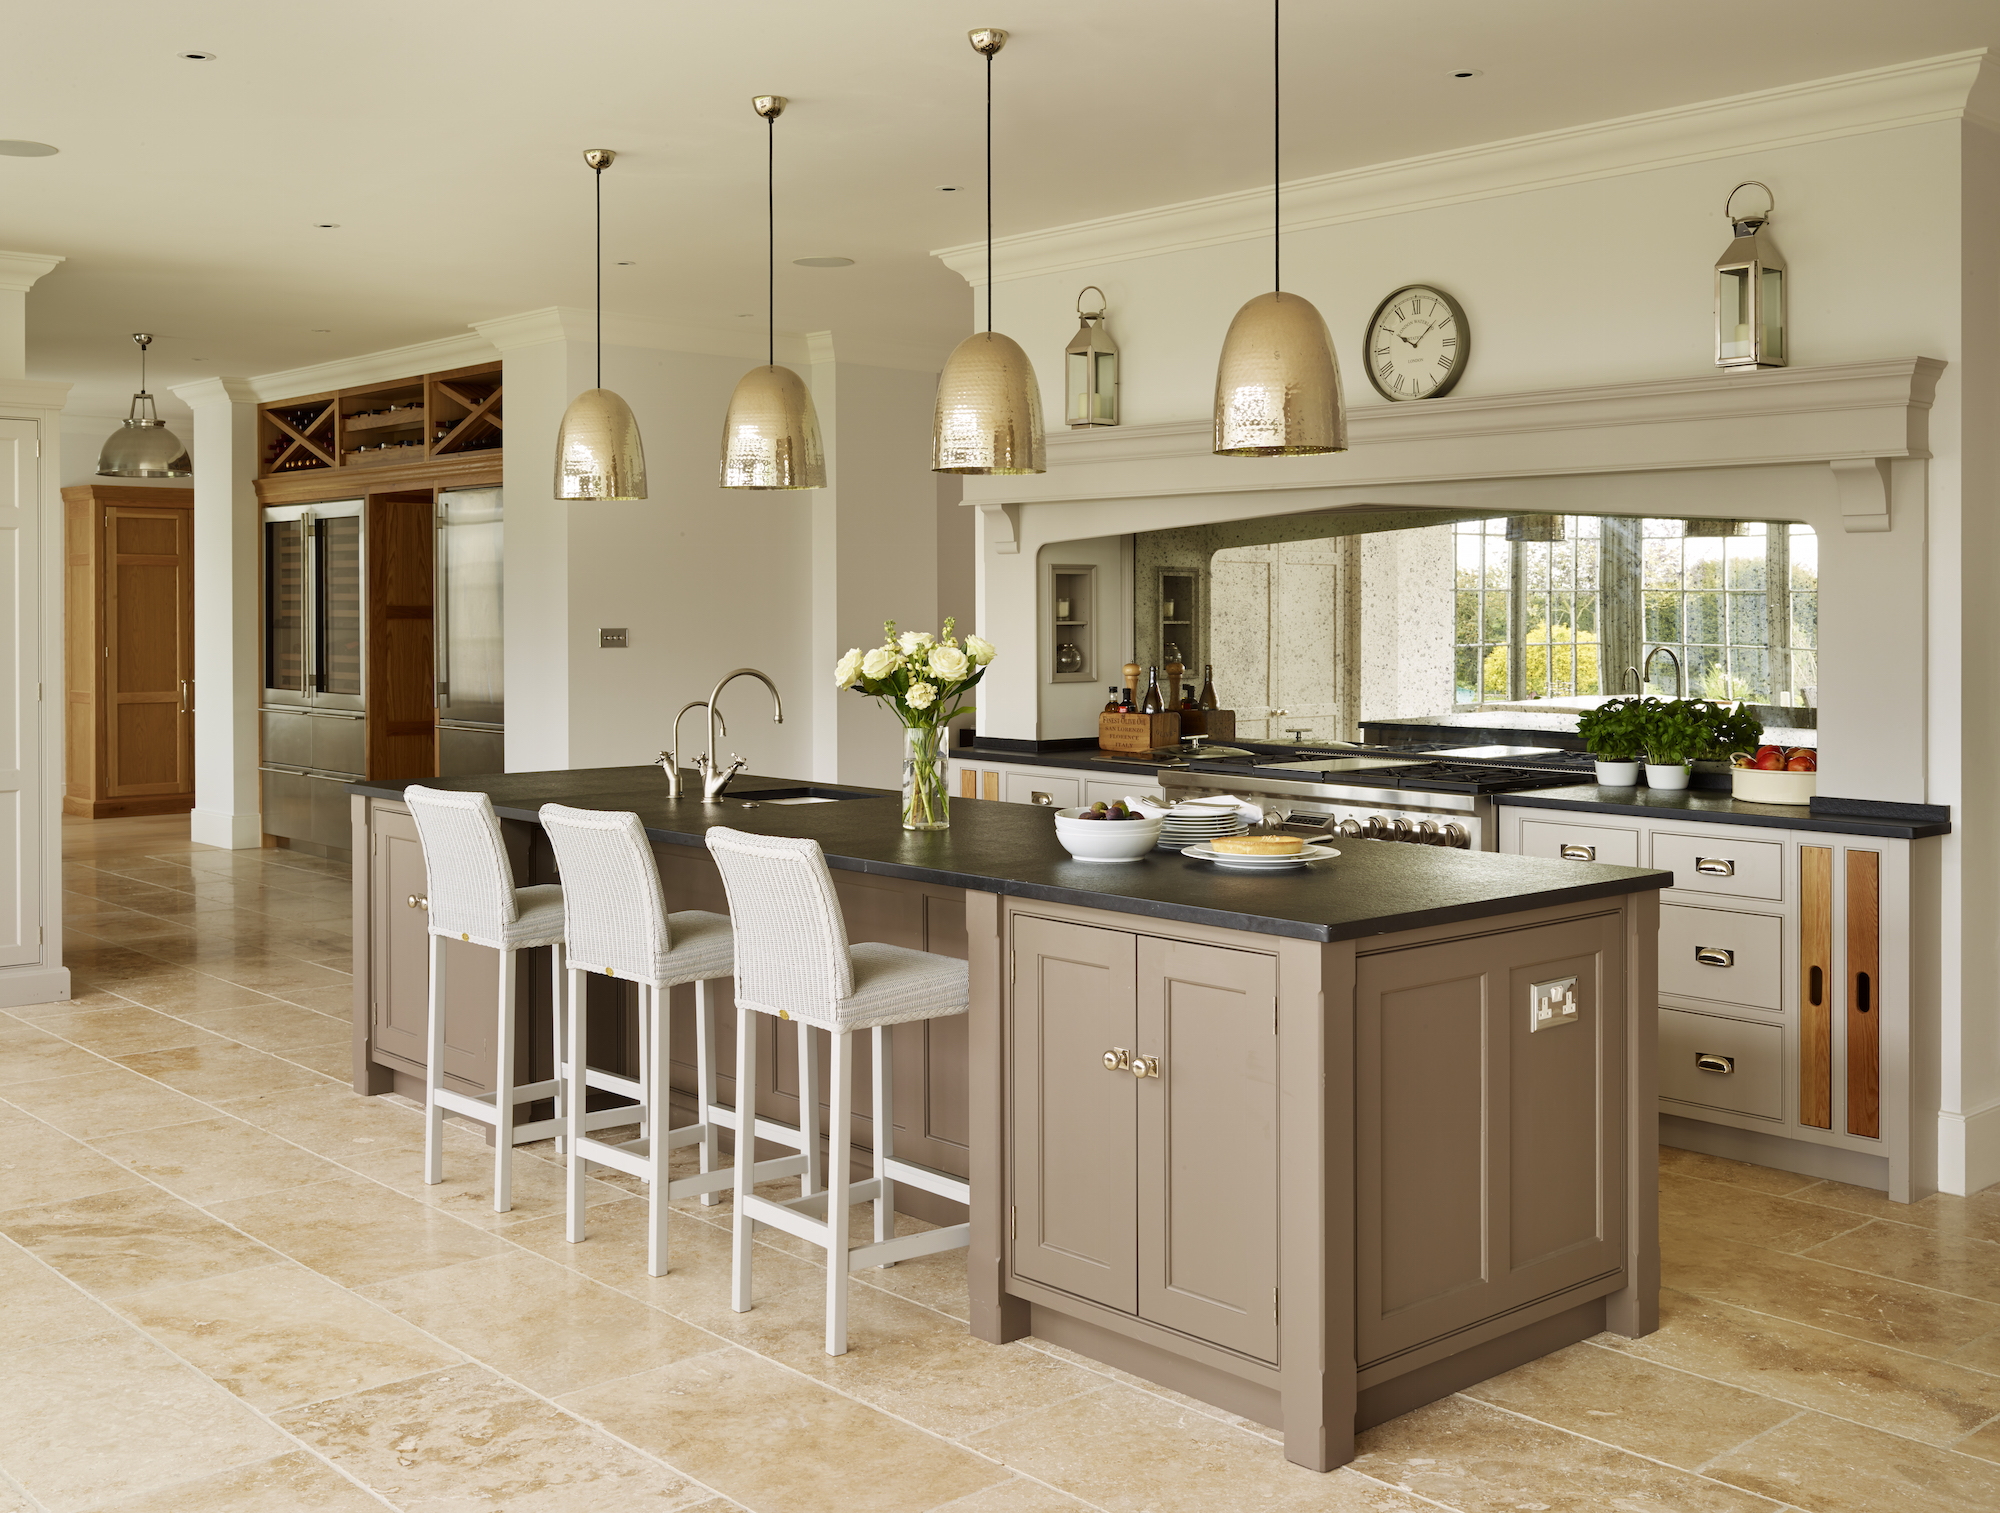 Design your own kitchen ideas with images for Design your own kitchen